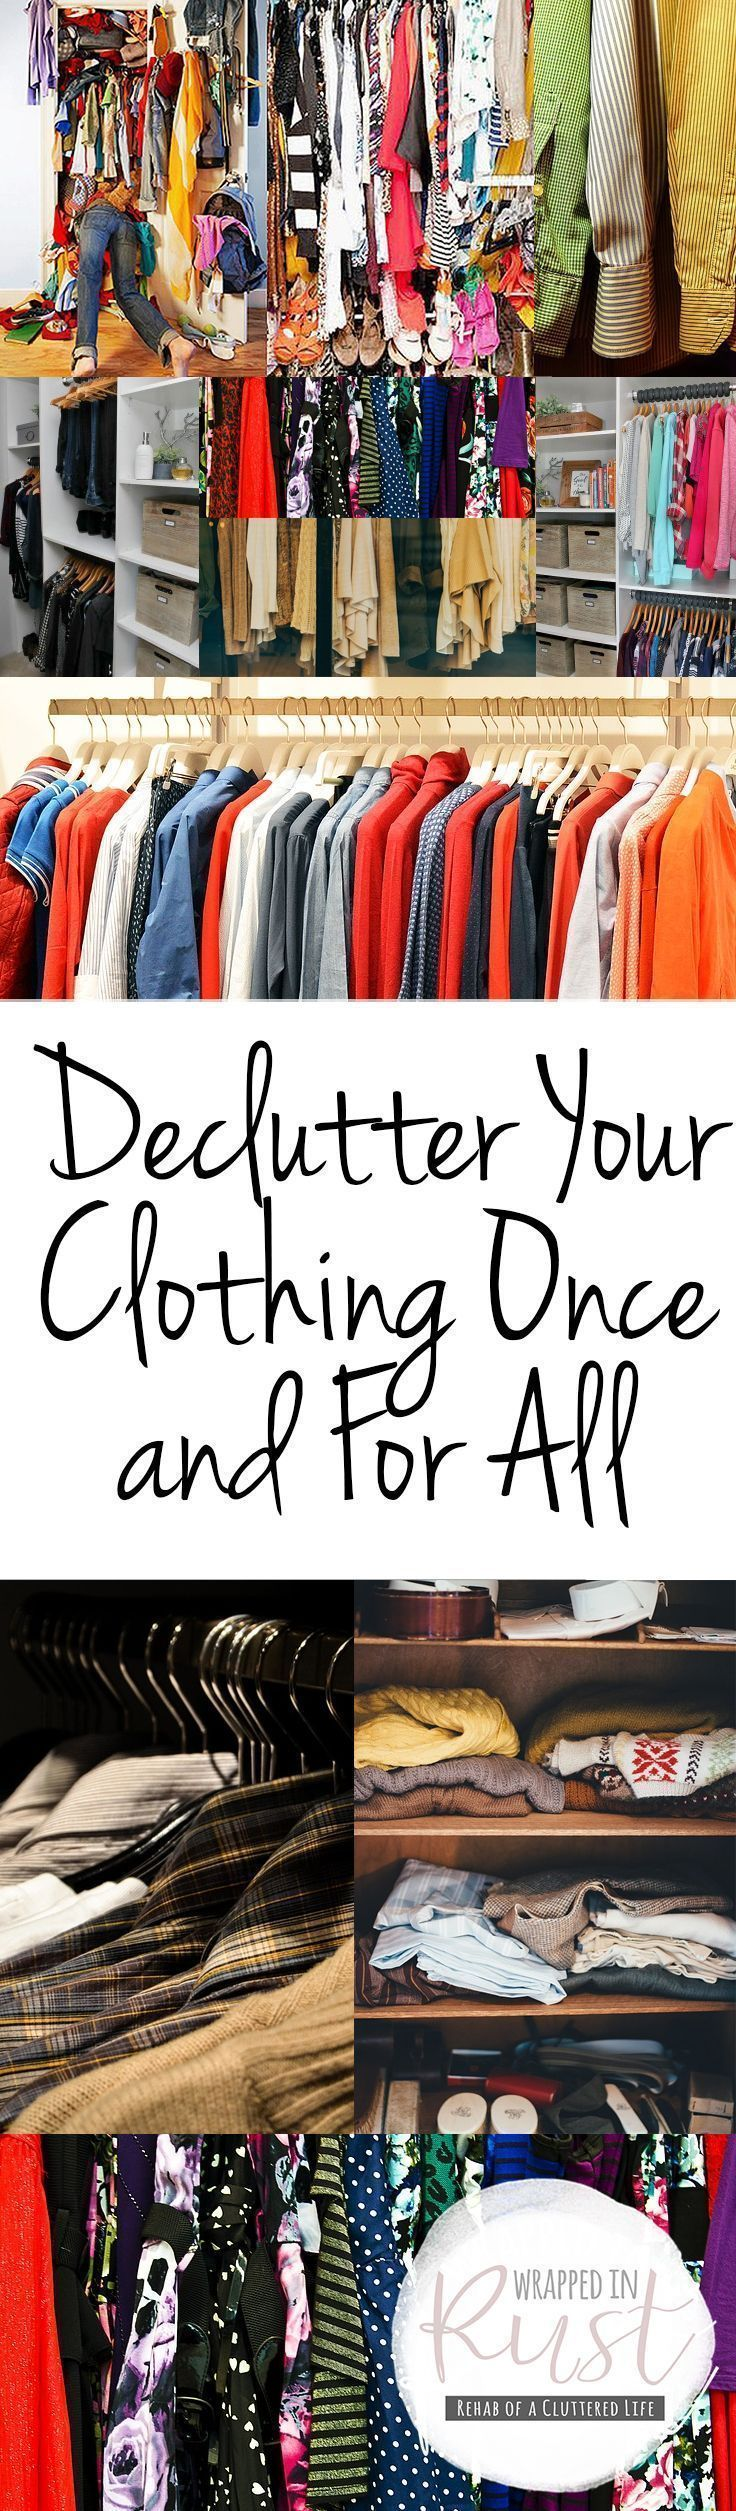 Declutter Your Clothing Once and For All